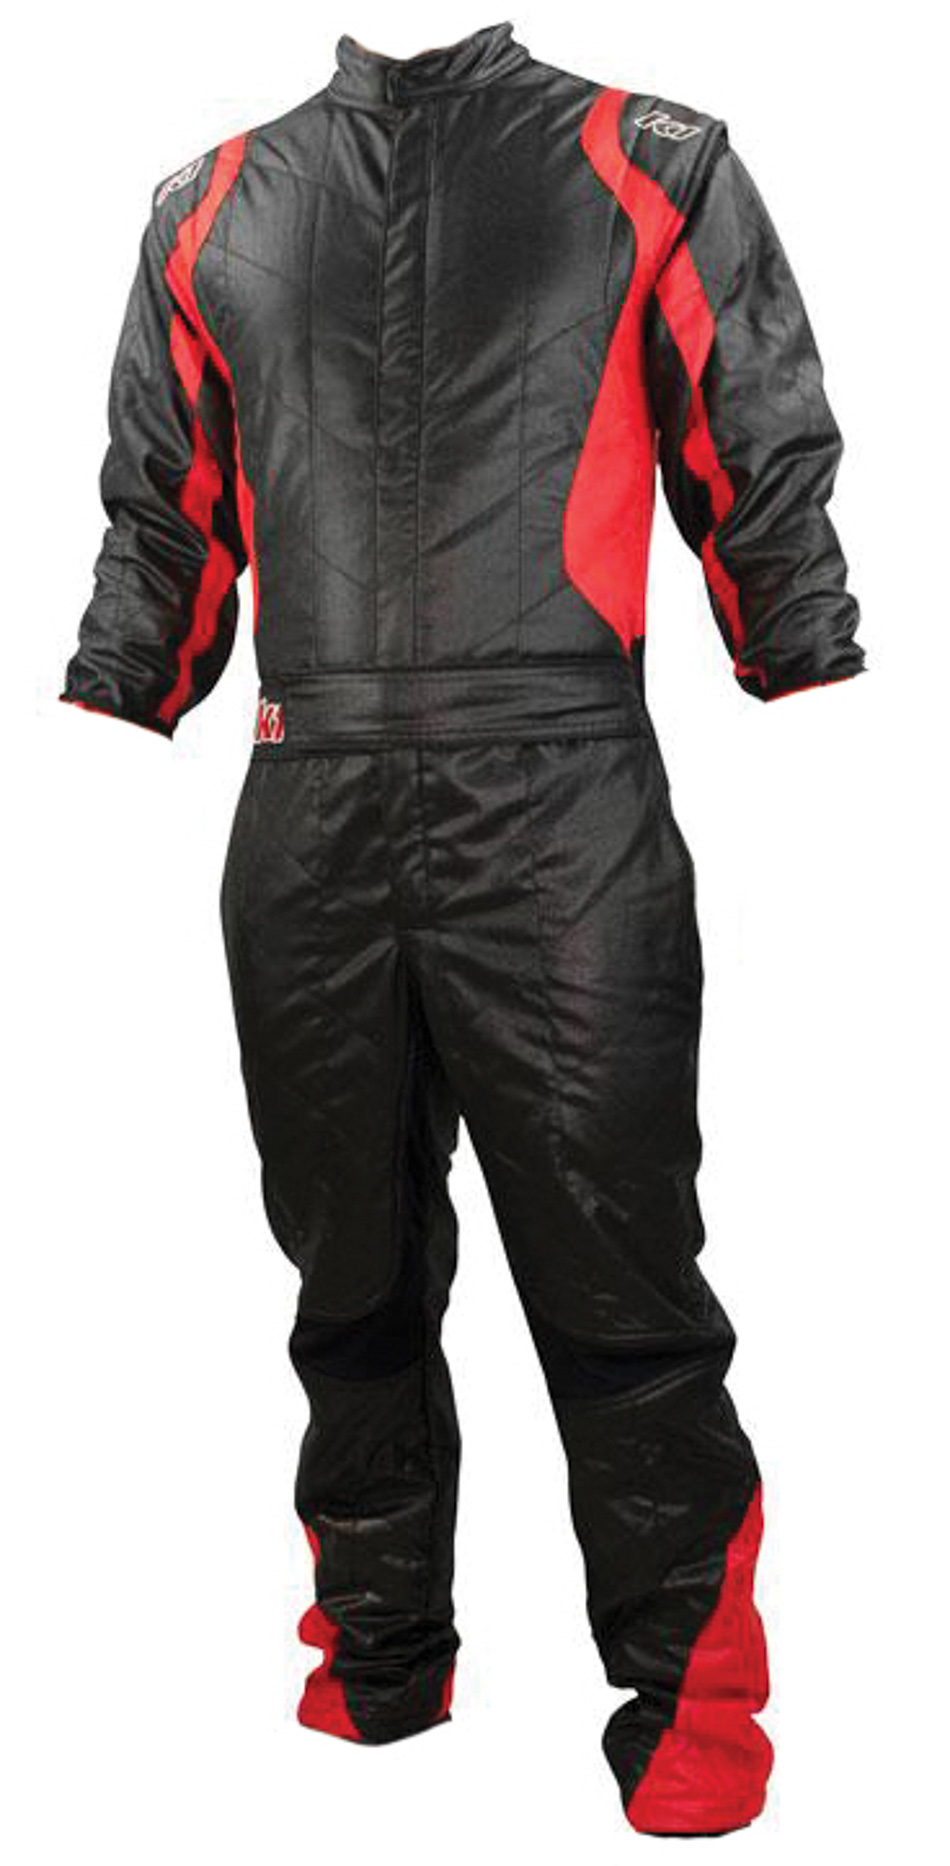 Black 2 Layer Racing Suit-One Piece-SFI-5 Rated Small